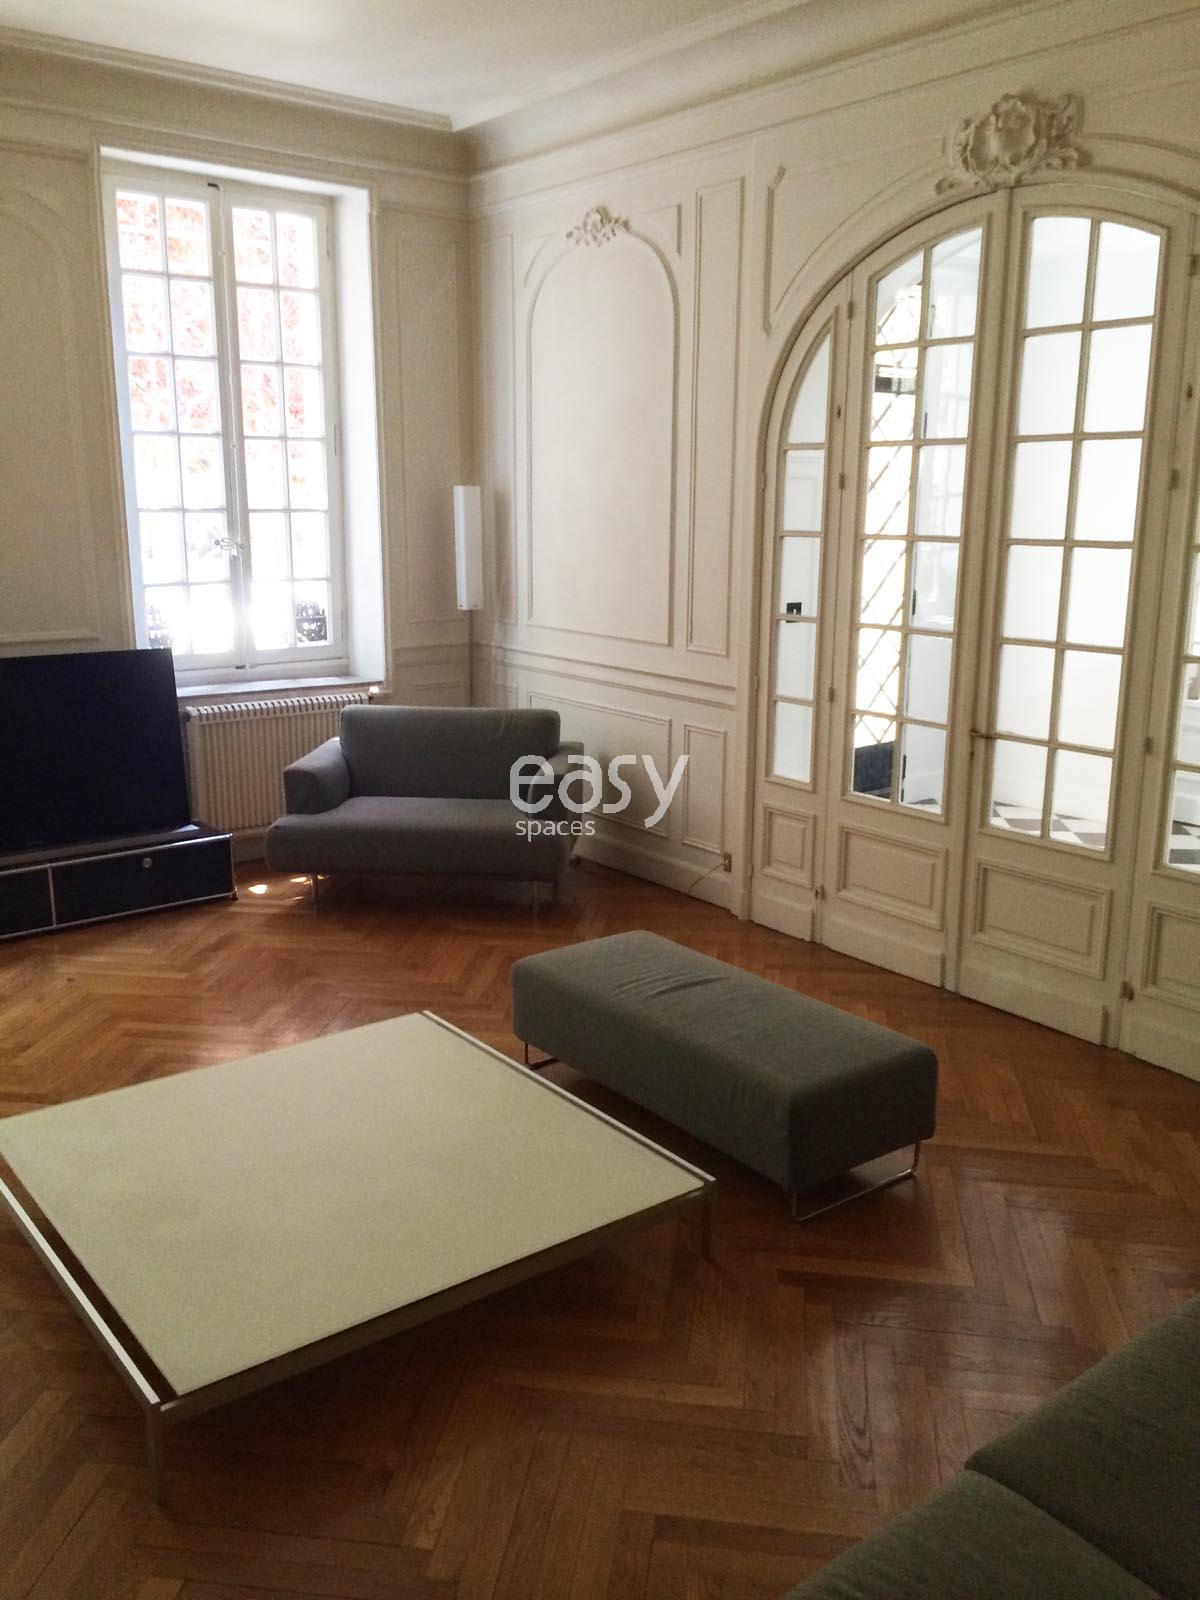 louer un appartement avec parquet moulures chemin e de type haussmannien pour prises de vues. Black Bedroom Furniture Sets. Home Design Ideas